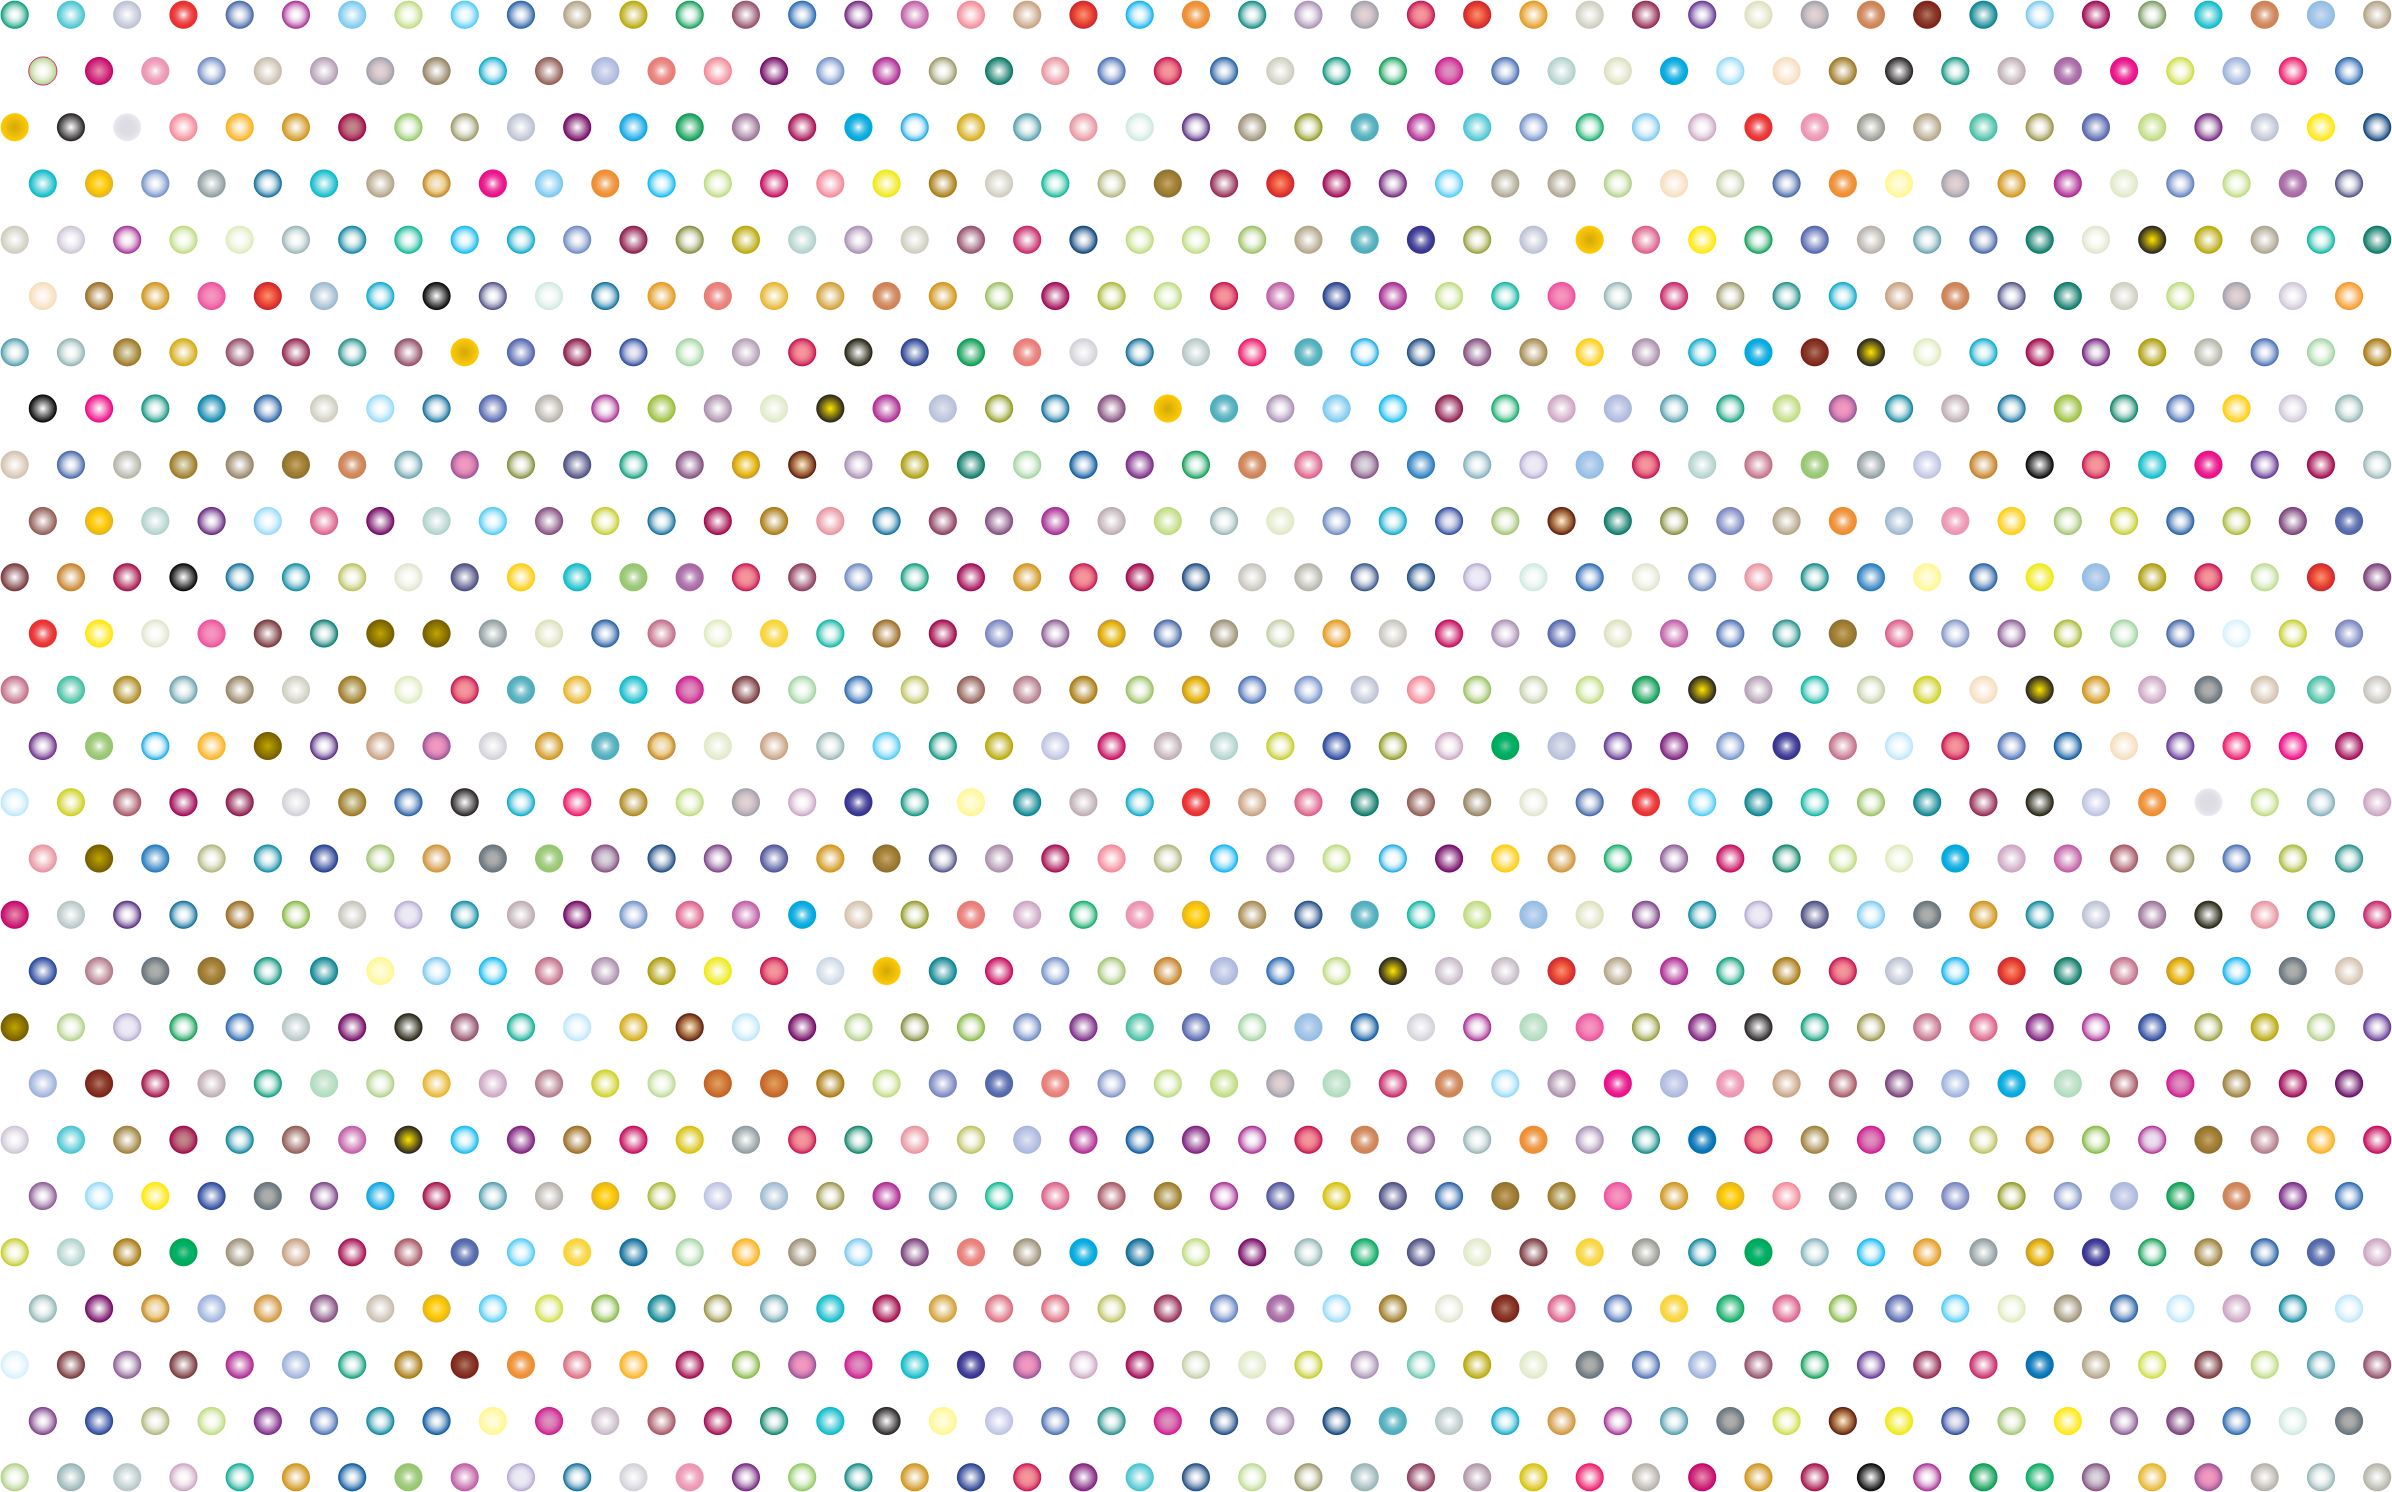 Number 2 Clipart Polka Dot  Number 2 Polka Dot Transparent